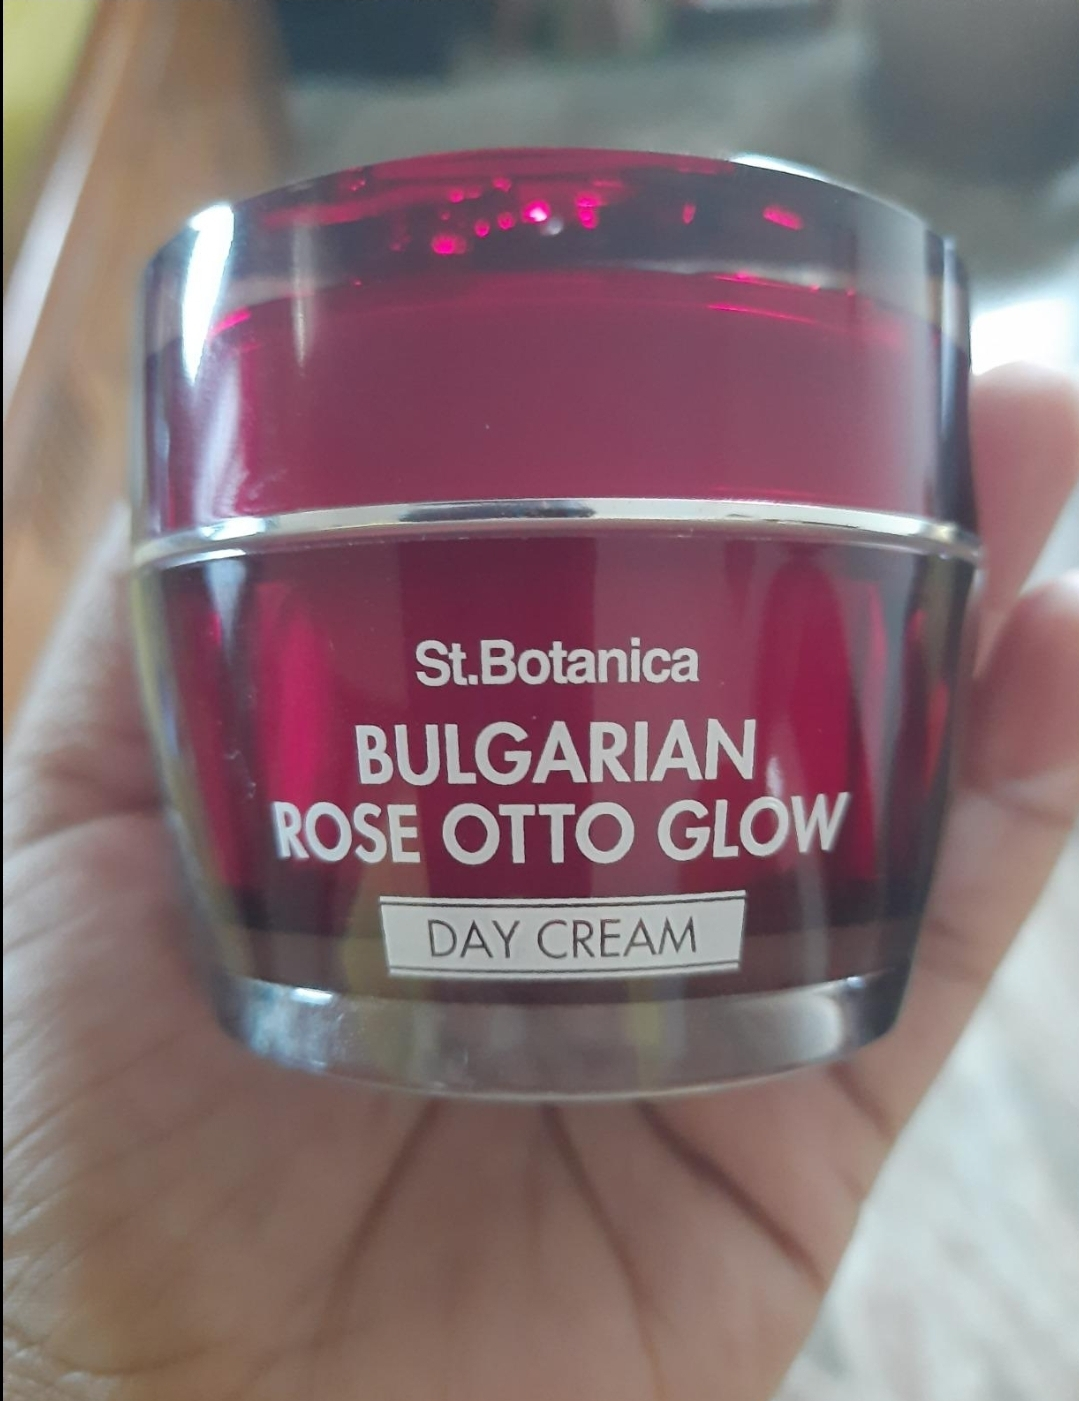 St.Botanica Bulgarian Rose Otto Glow Day Cream pic 2-Amazing Day Cream!-By satzworldlylifestyle_satabdi_das_sen